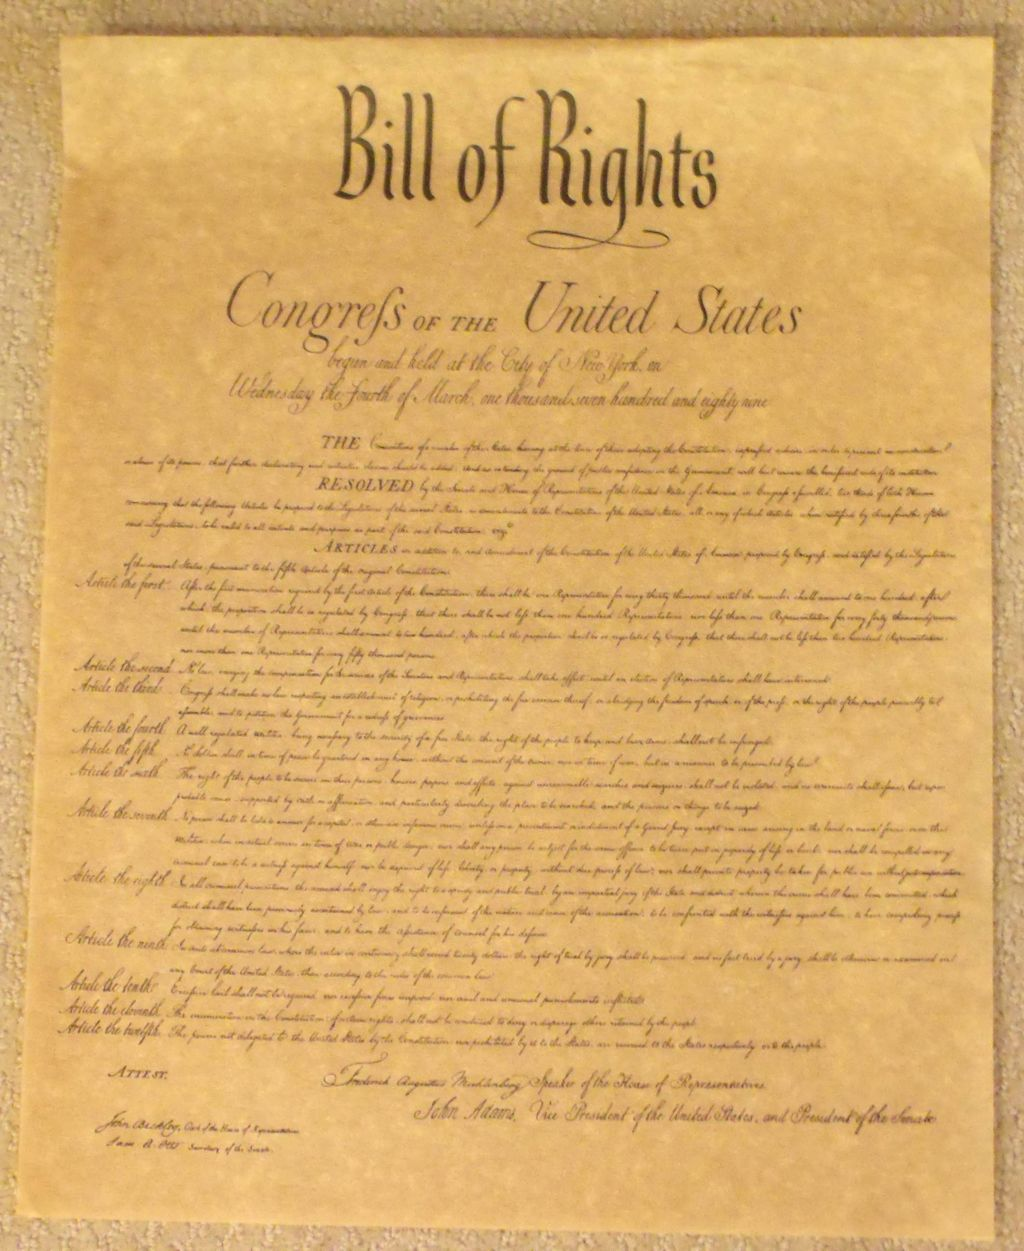 amendment project on  it was ratified in 1791 by the 2nd continental congress it states the basic rights of a person like dom of speech press right to bear arms